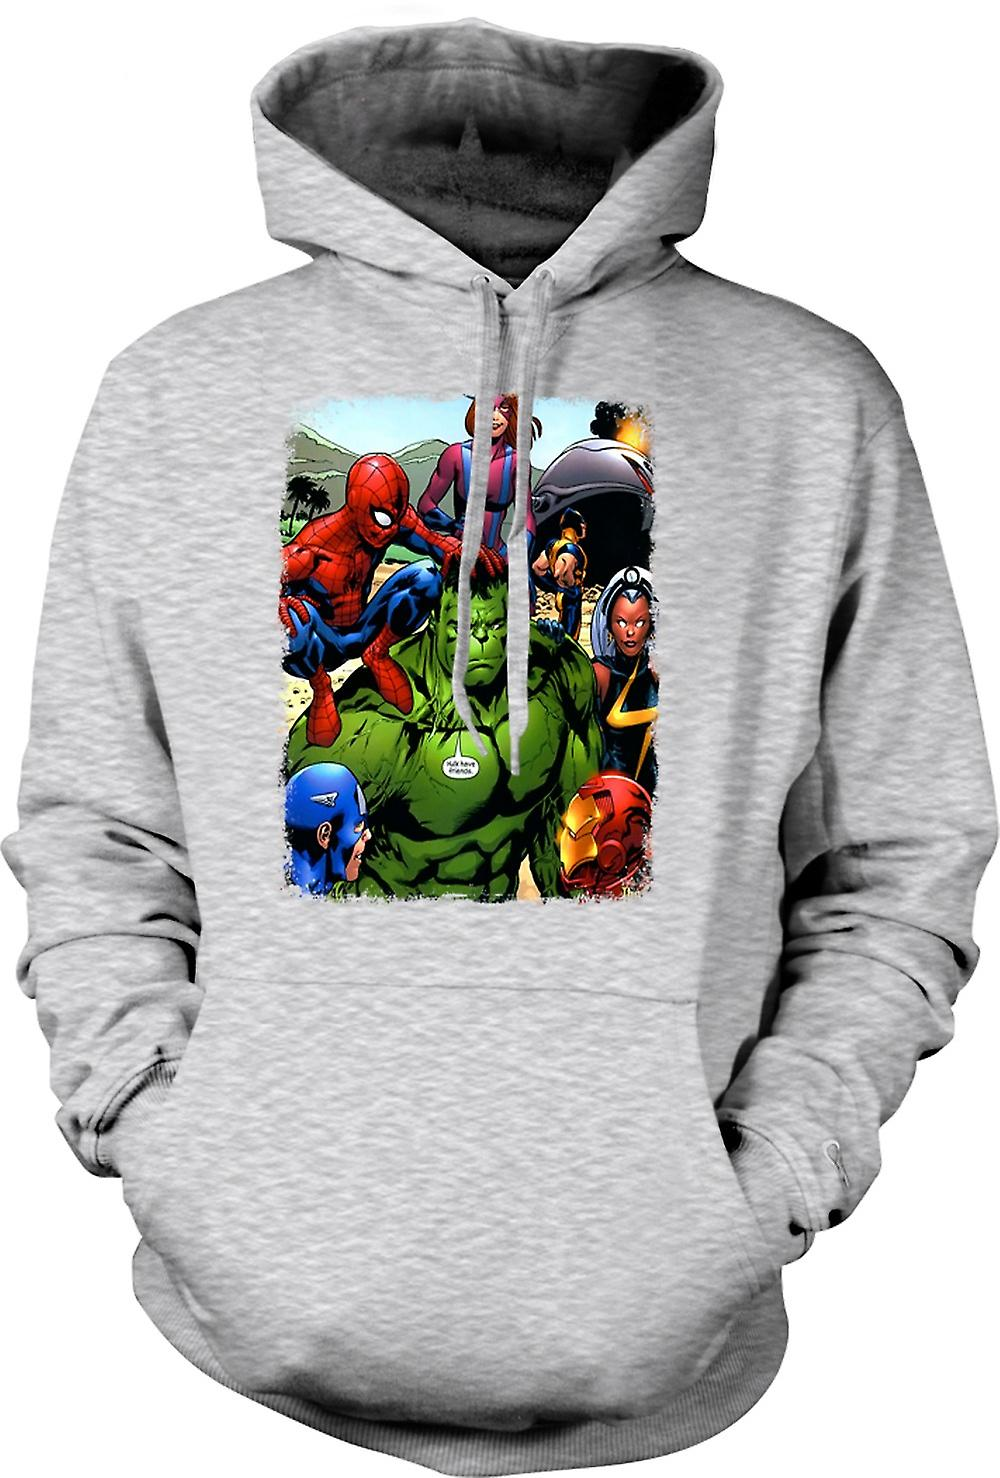 Mens Hoodie - Hulk Spiderman Iron Man